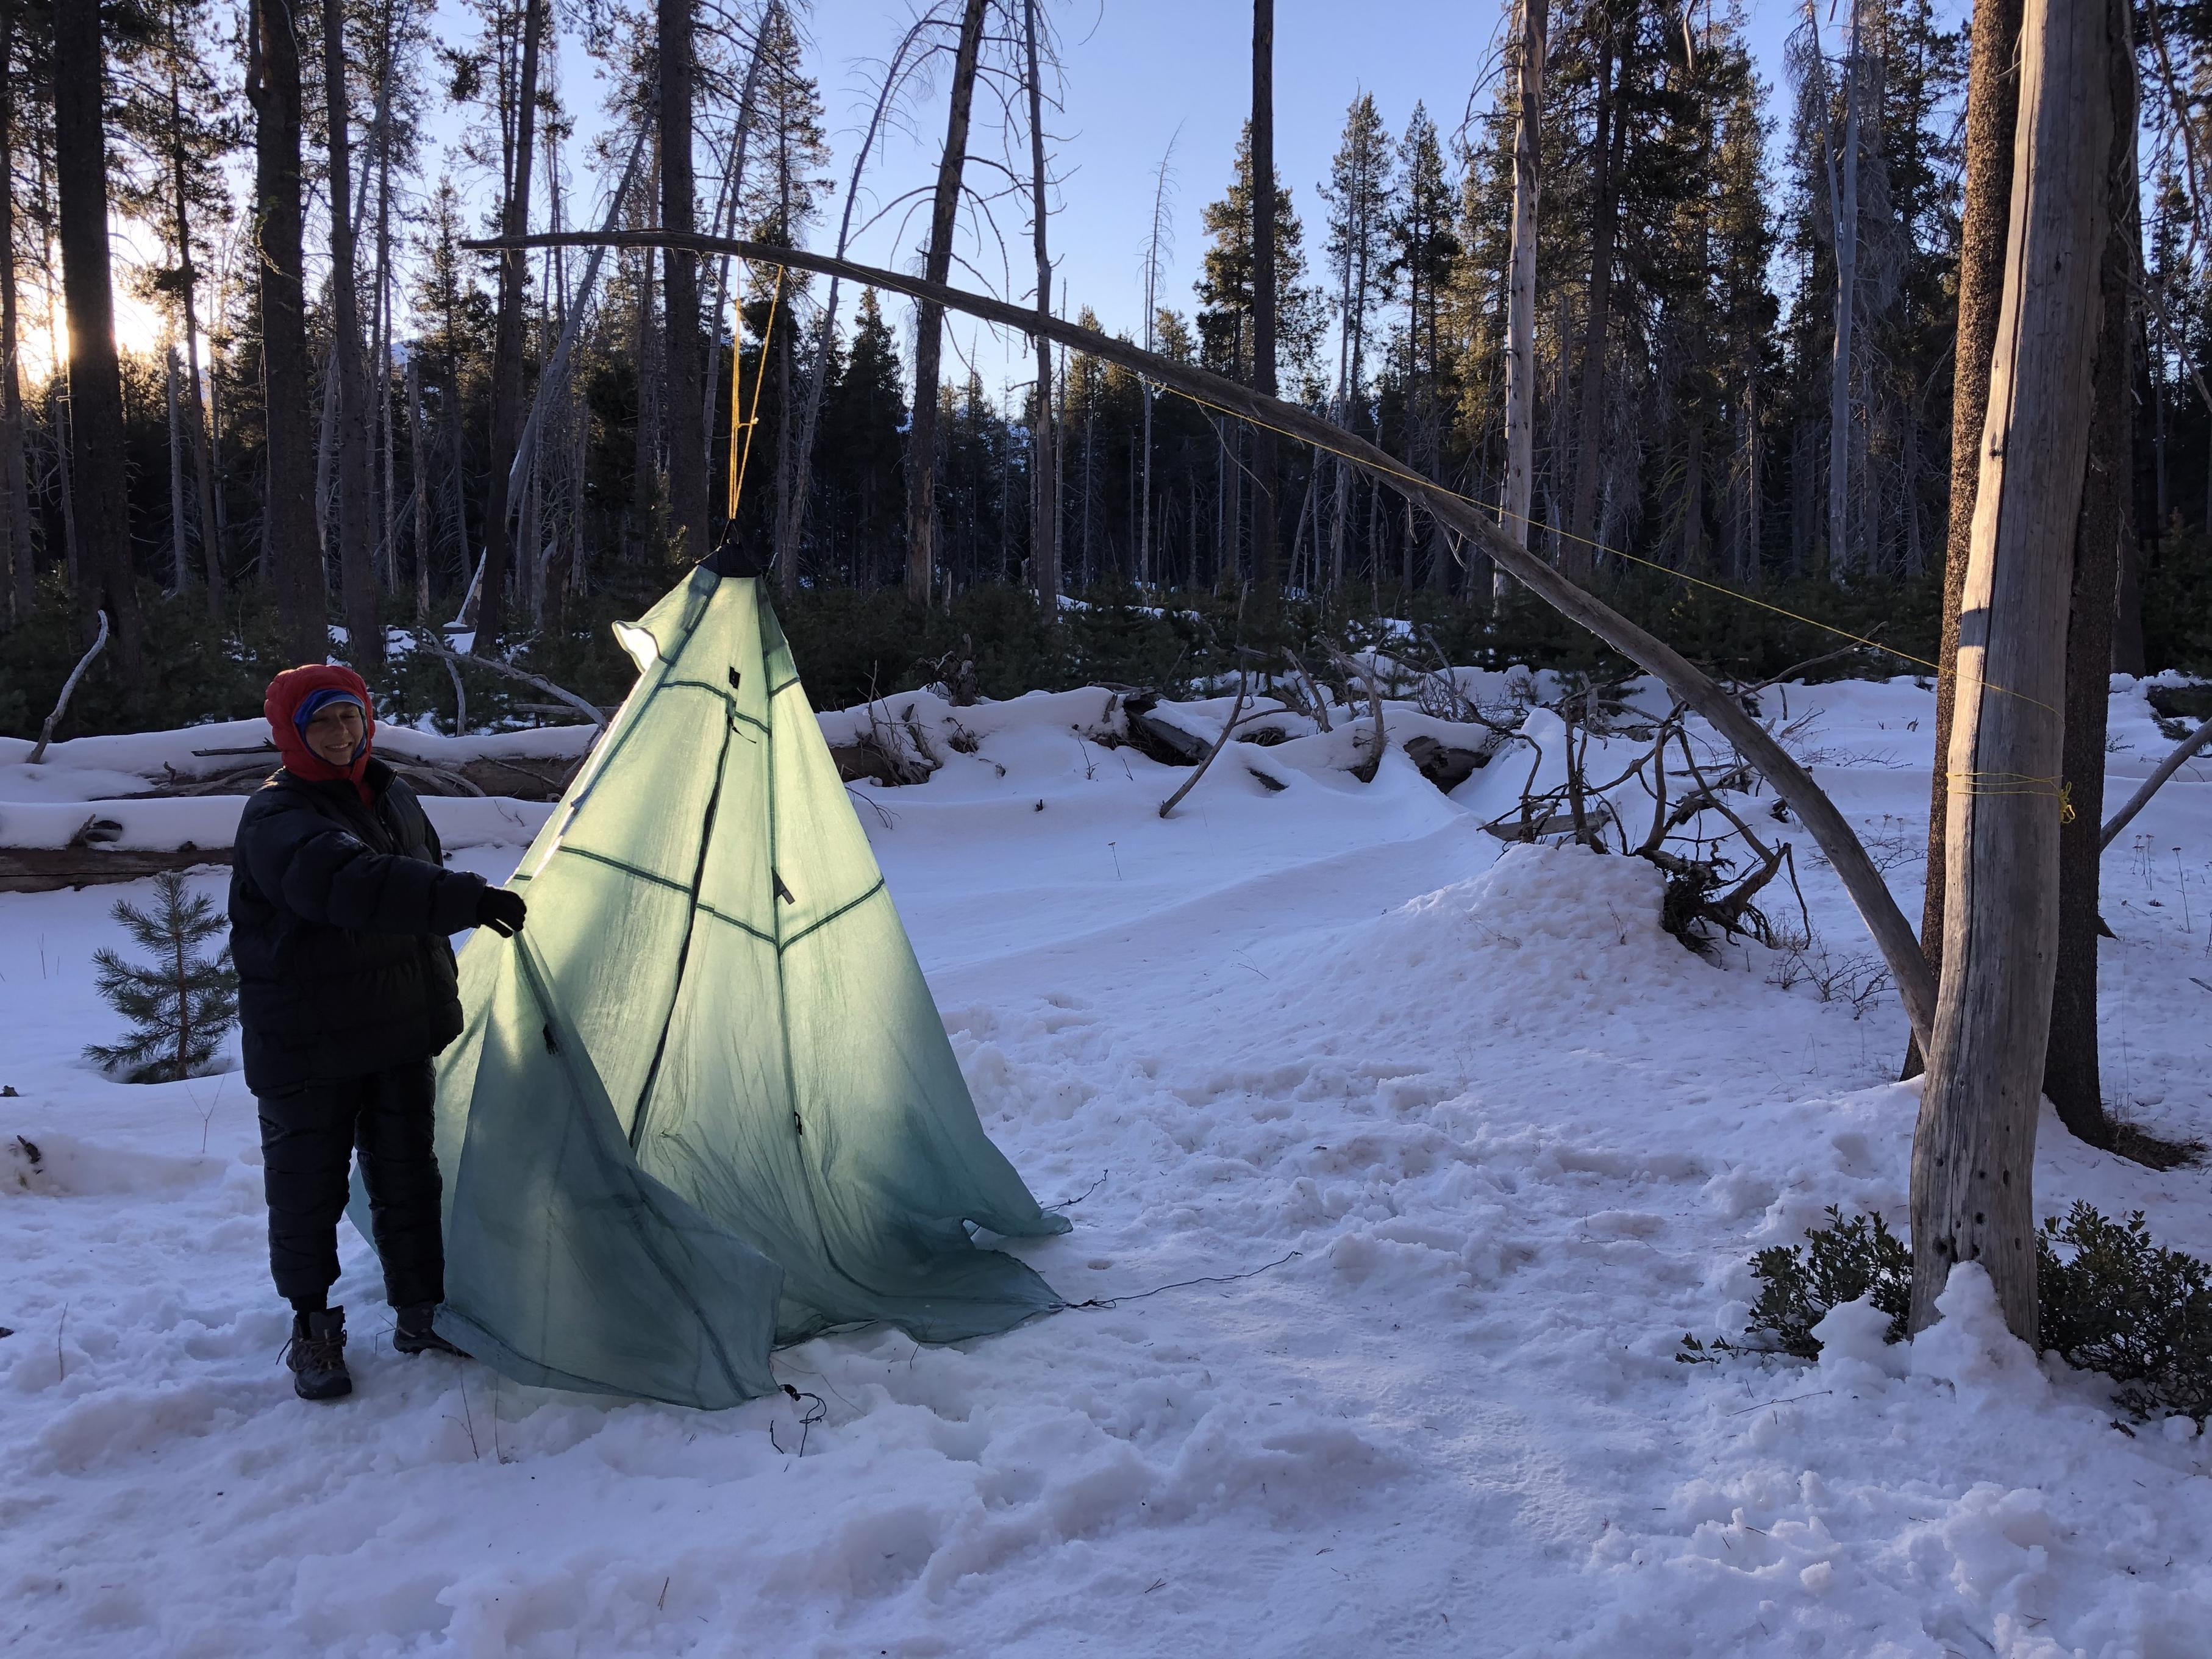 Gela takes down the tent